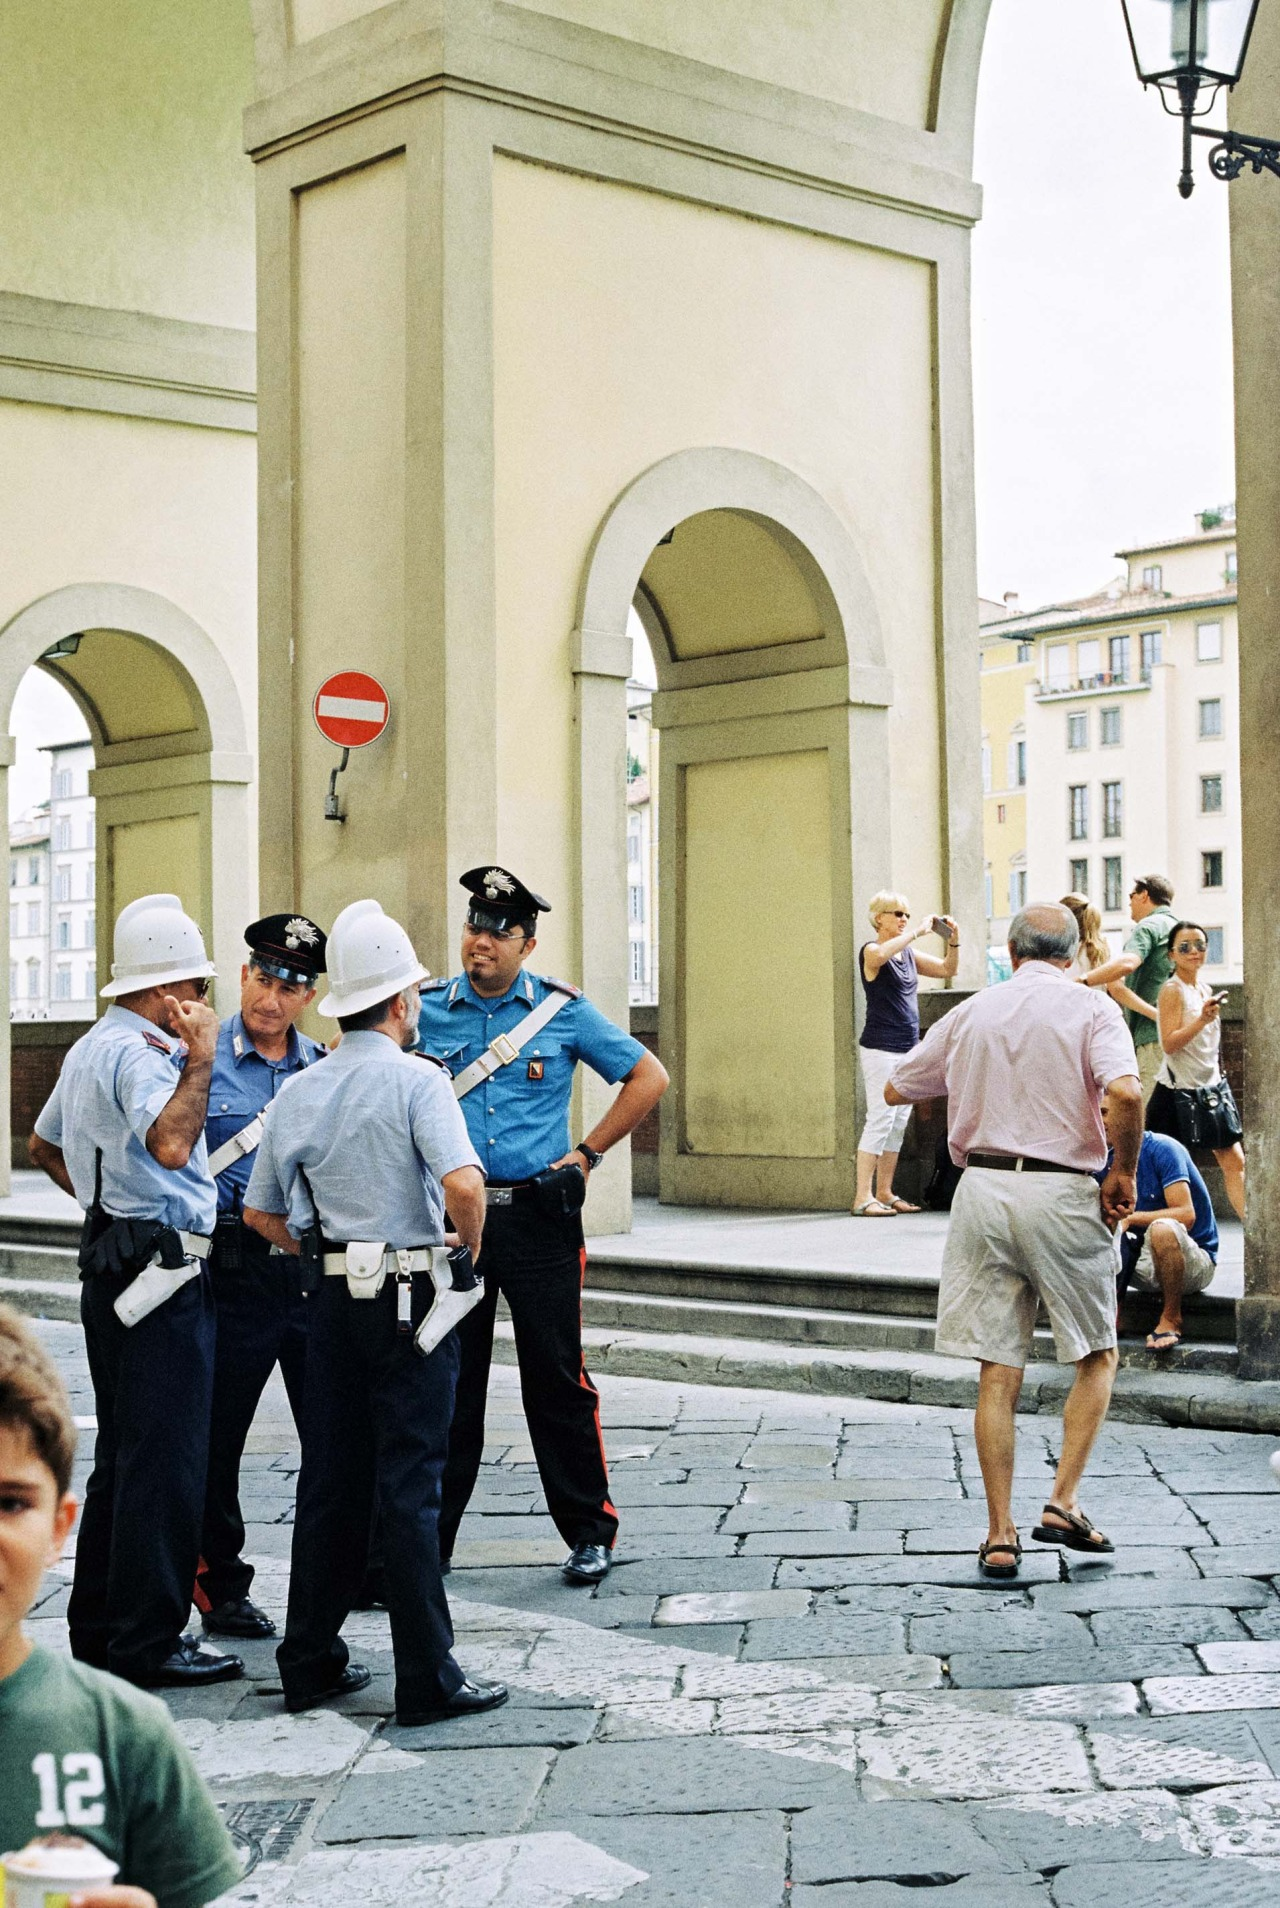 Meeting of police…Florence, Italy   Canon AI program 35mm    nataliehillphotography.com